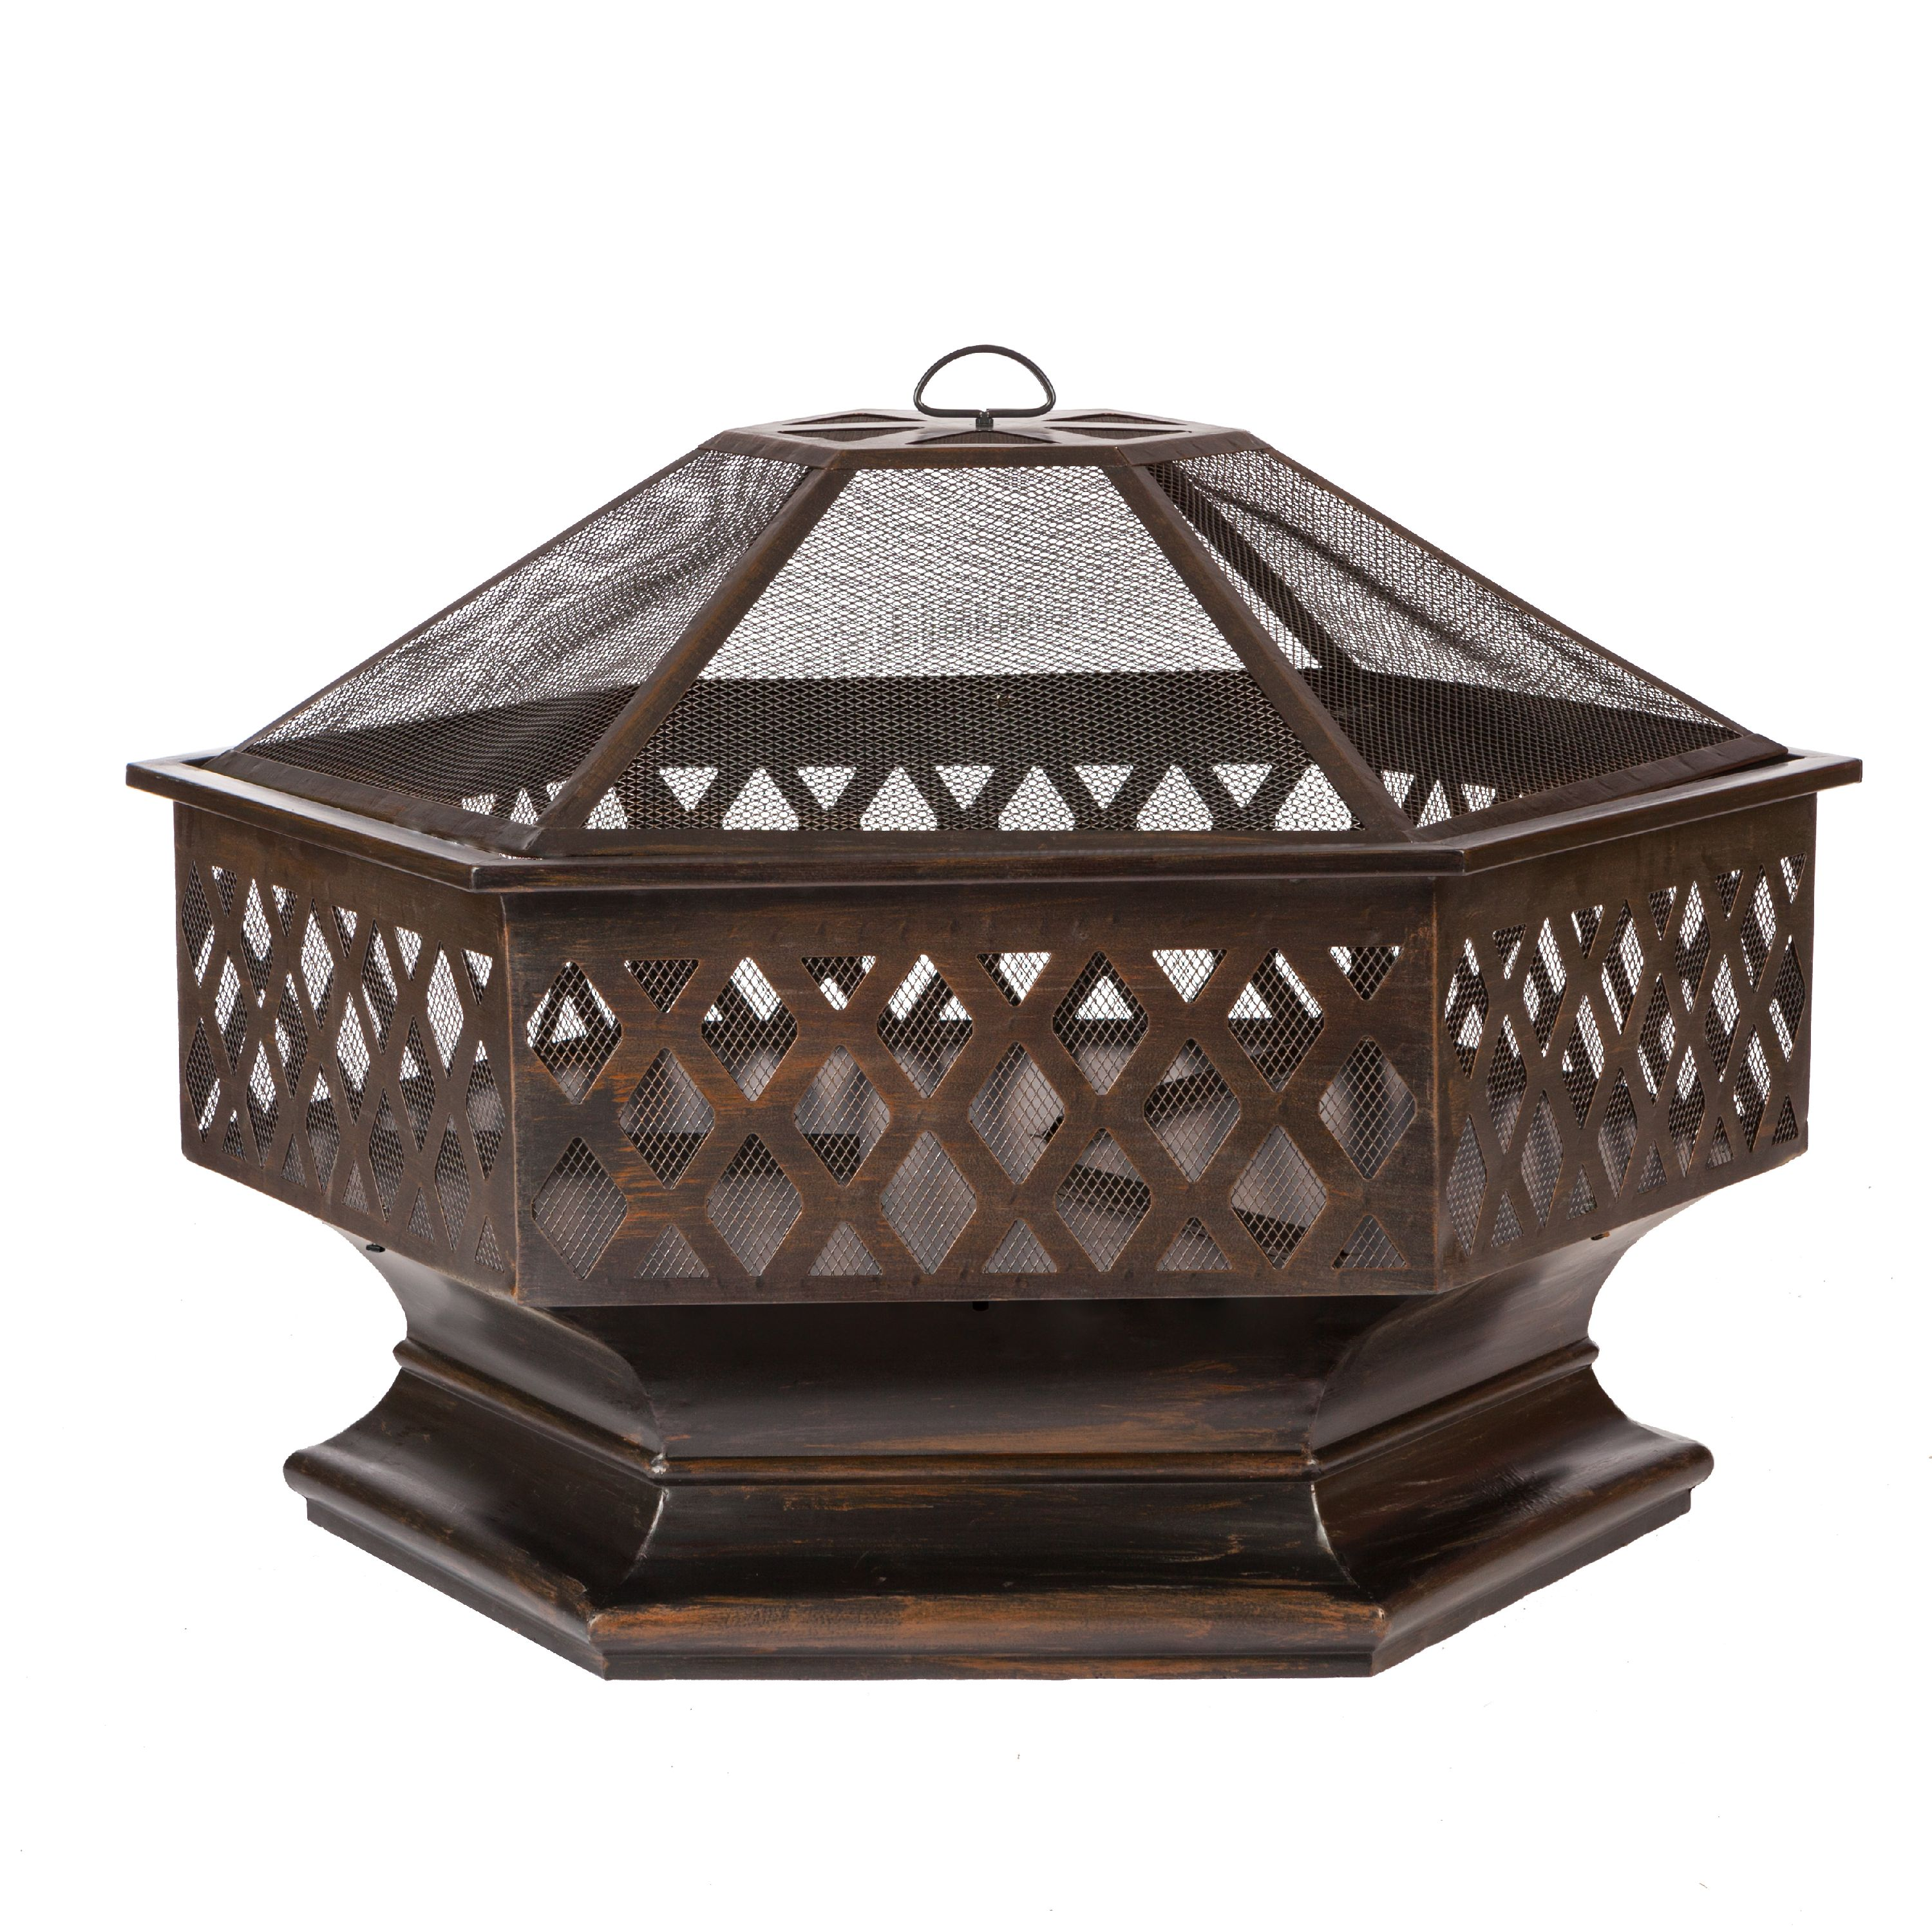 Ventura Hexagon Wood Burning Firepit by Well Traveled Living